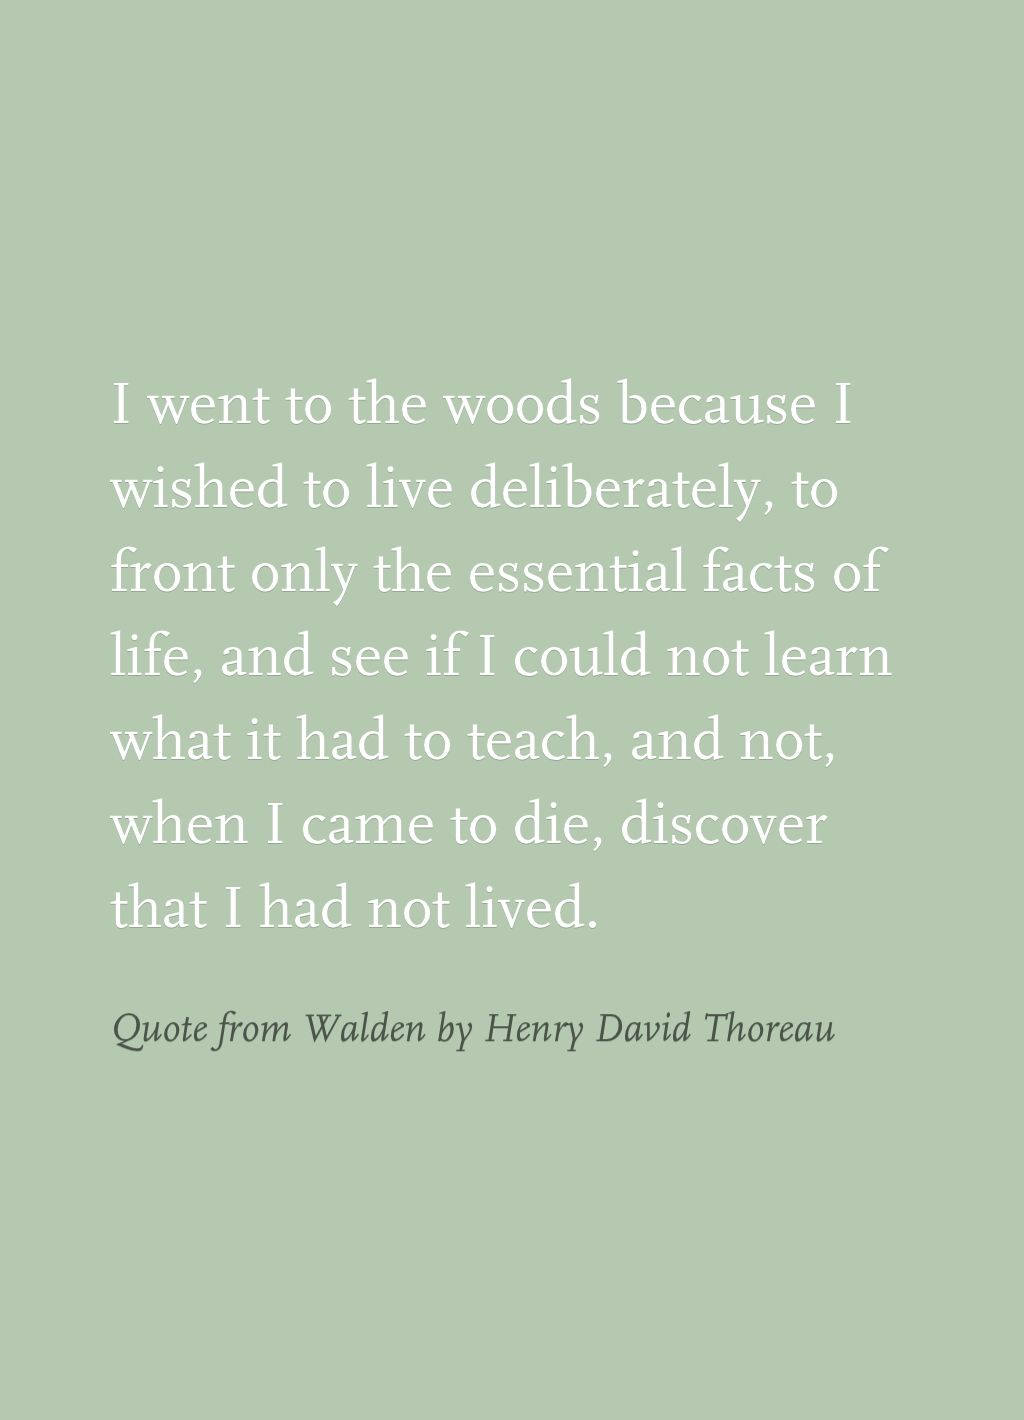 quote from walden by